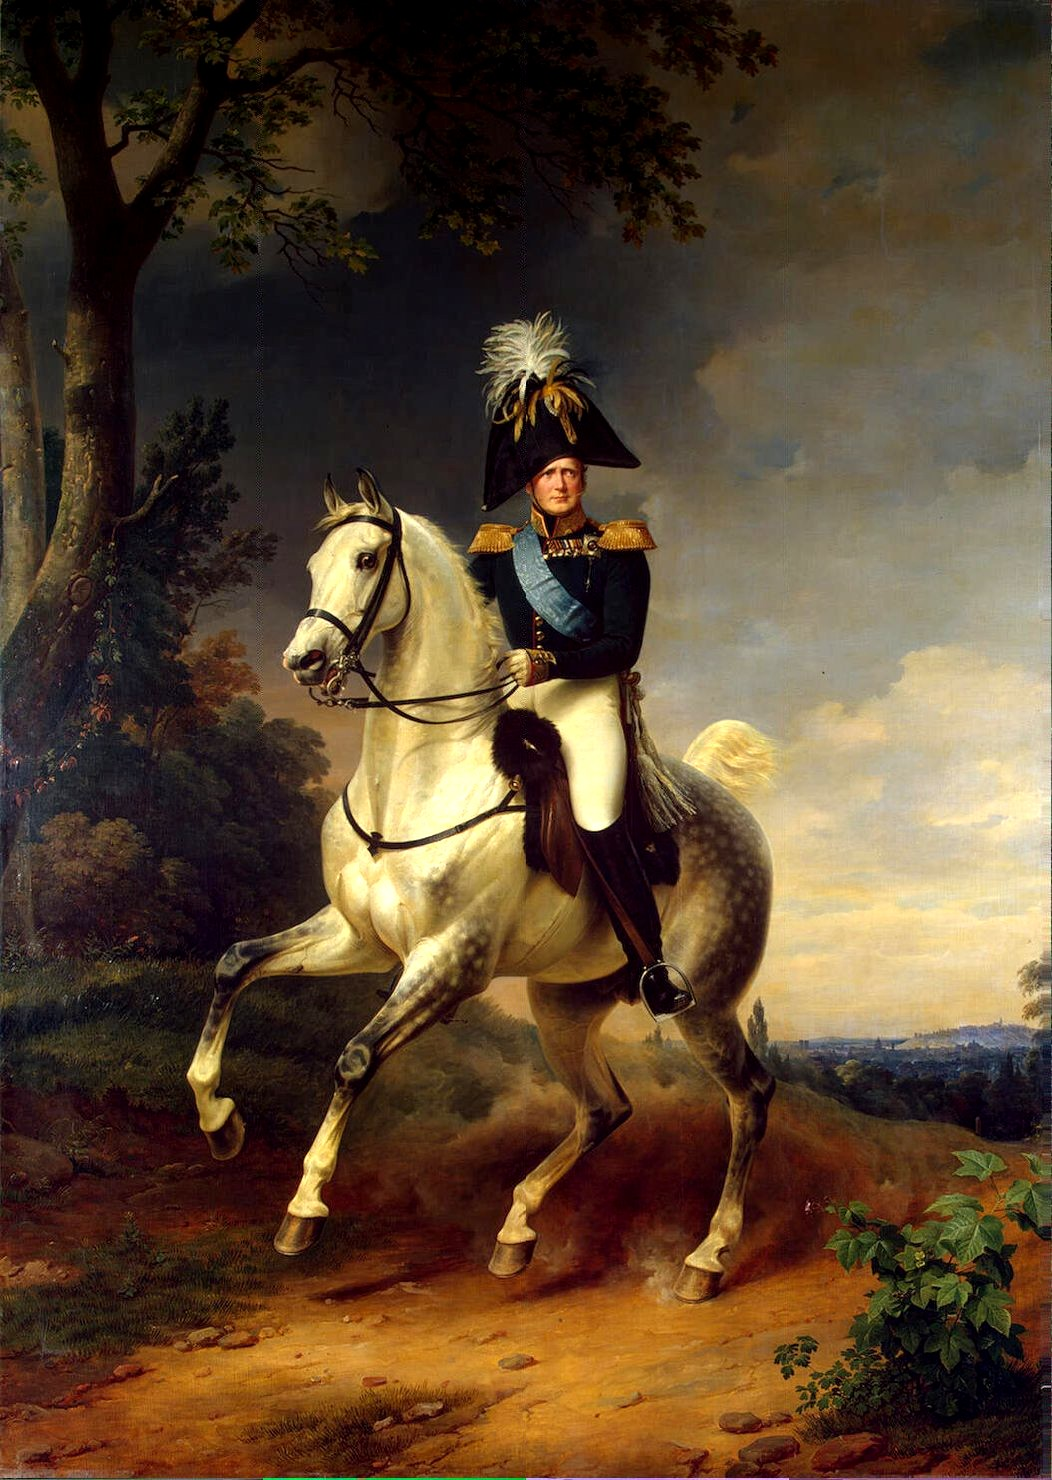 Alexander_I_of_Russia_by_F.Kruger_(1837,_Hermitage).jpg